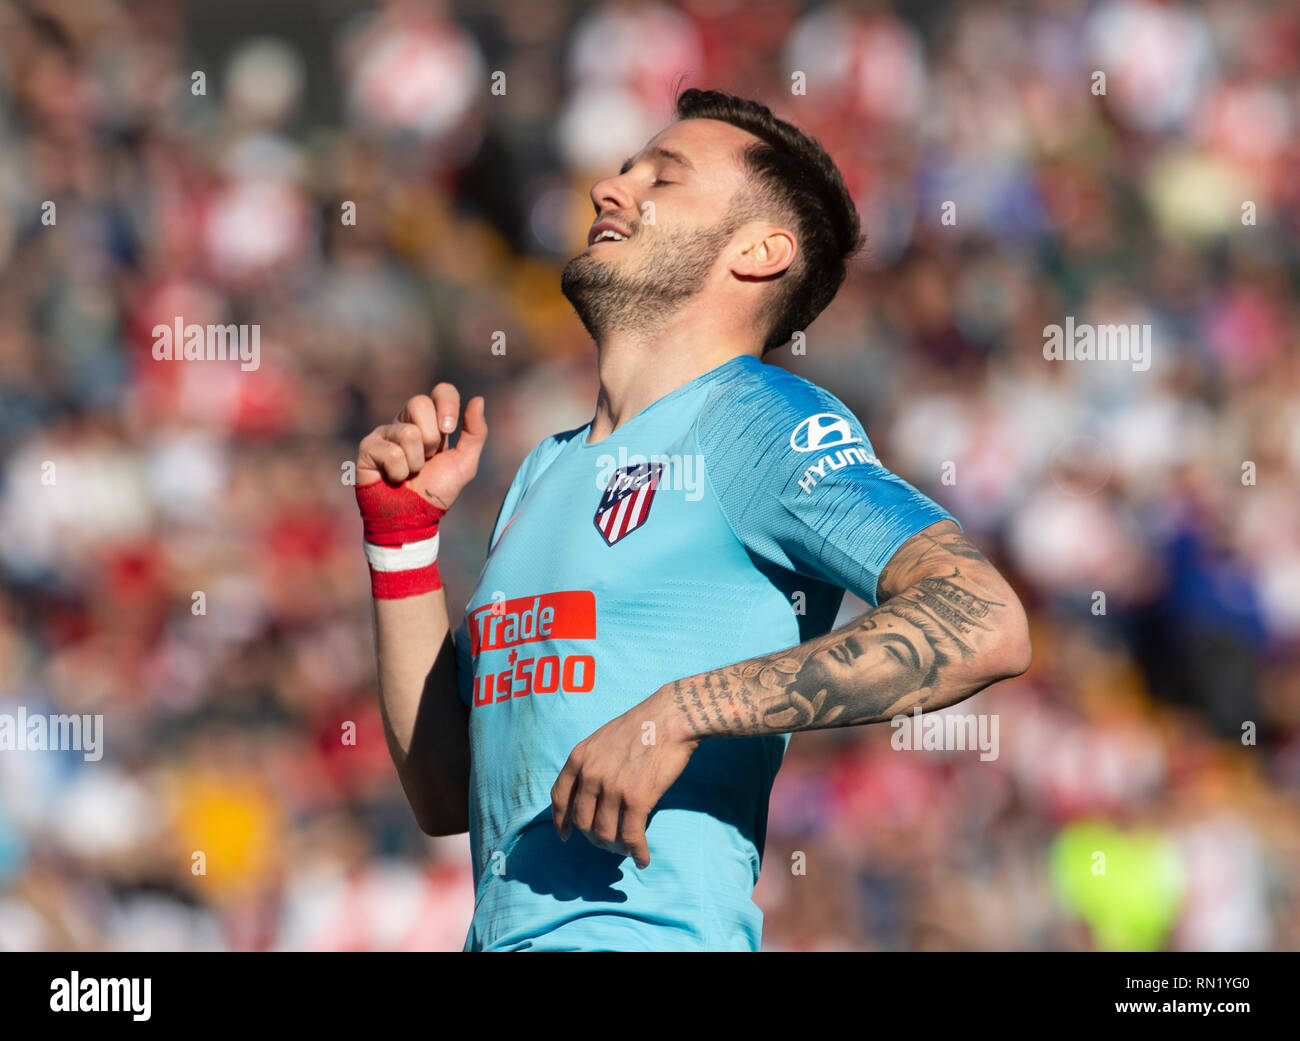 Saul Niguez of Atletico Madrid during the match between Rayo Vallecano vs Atletico Madrid of La Liga, date 24, 2018-2019 season. Stadium of Vallecas,  Madrid, Spain - 16  FEB 2019. - Stock Image